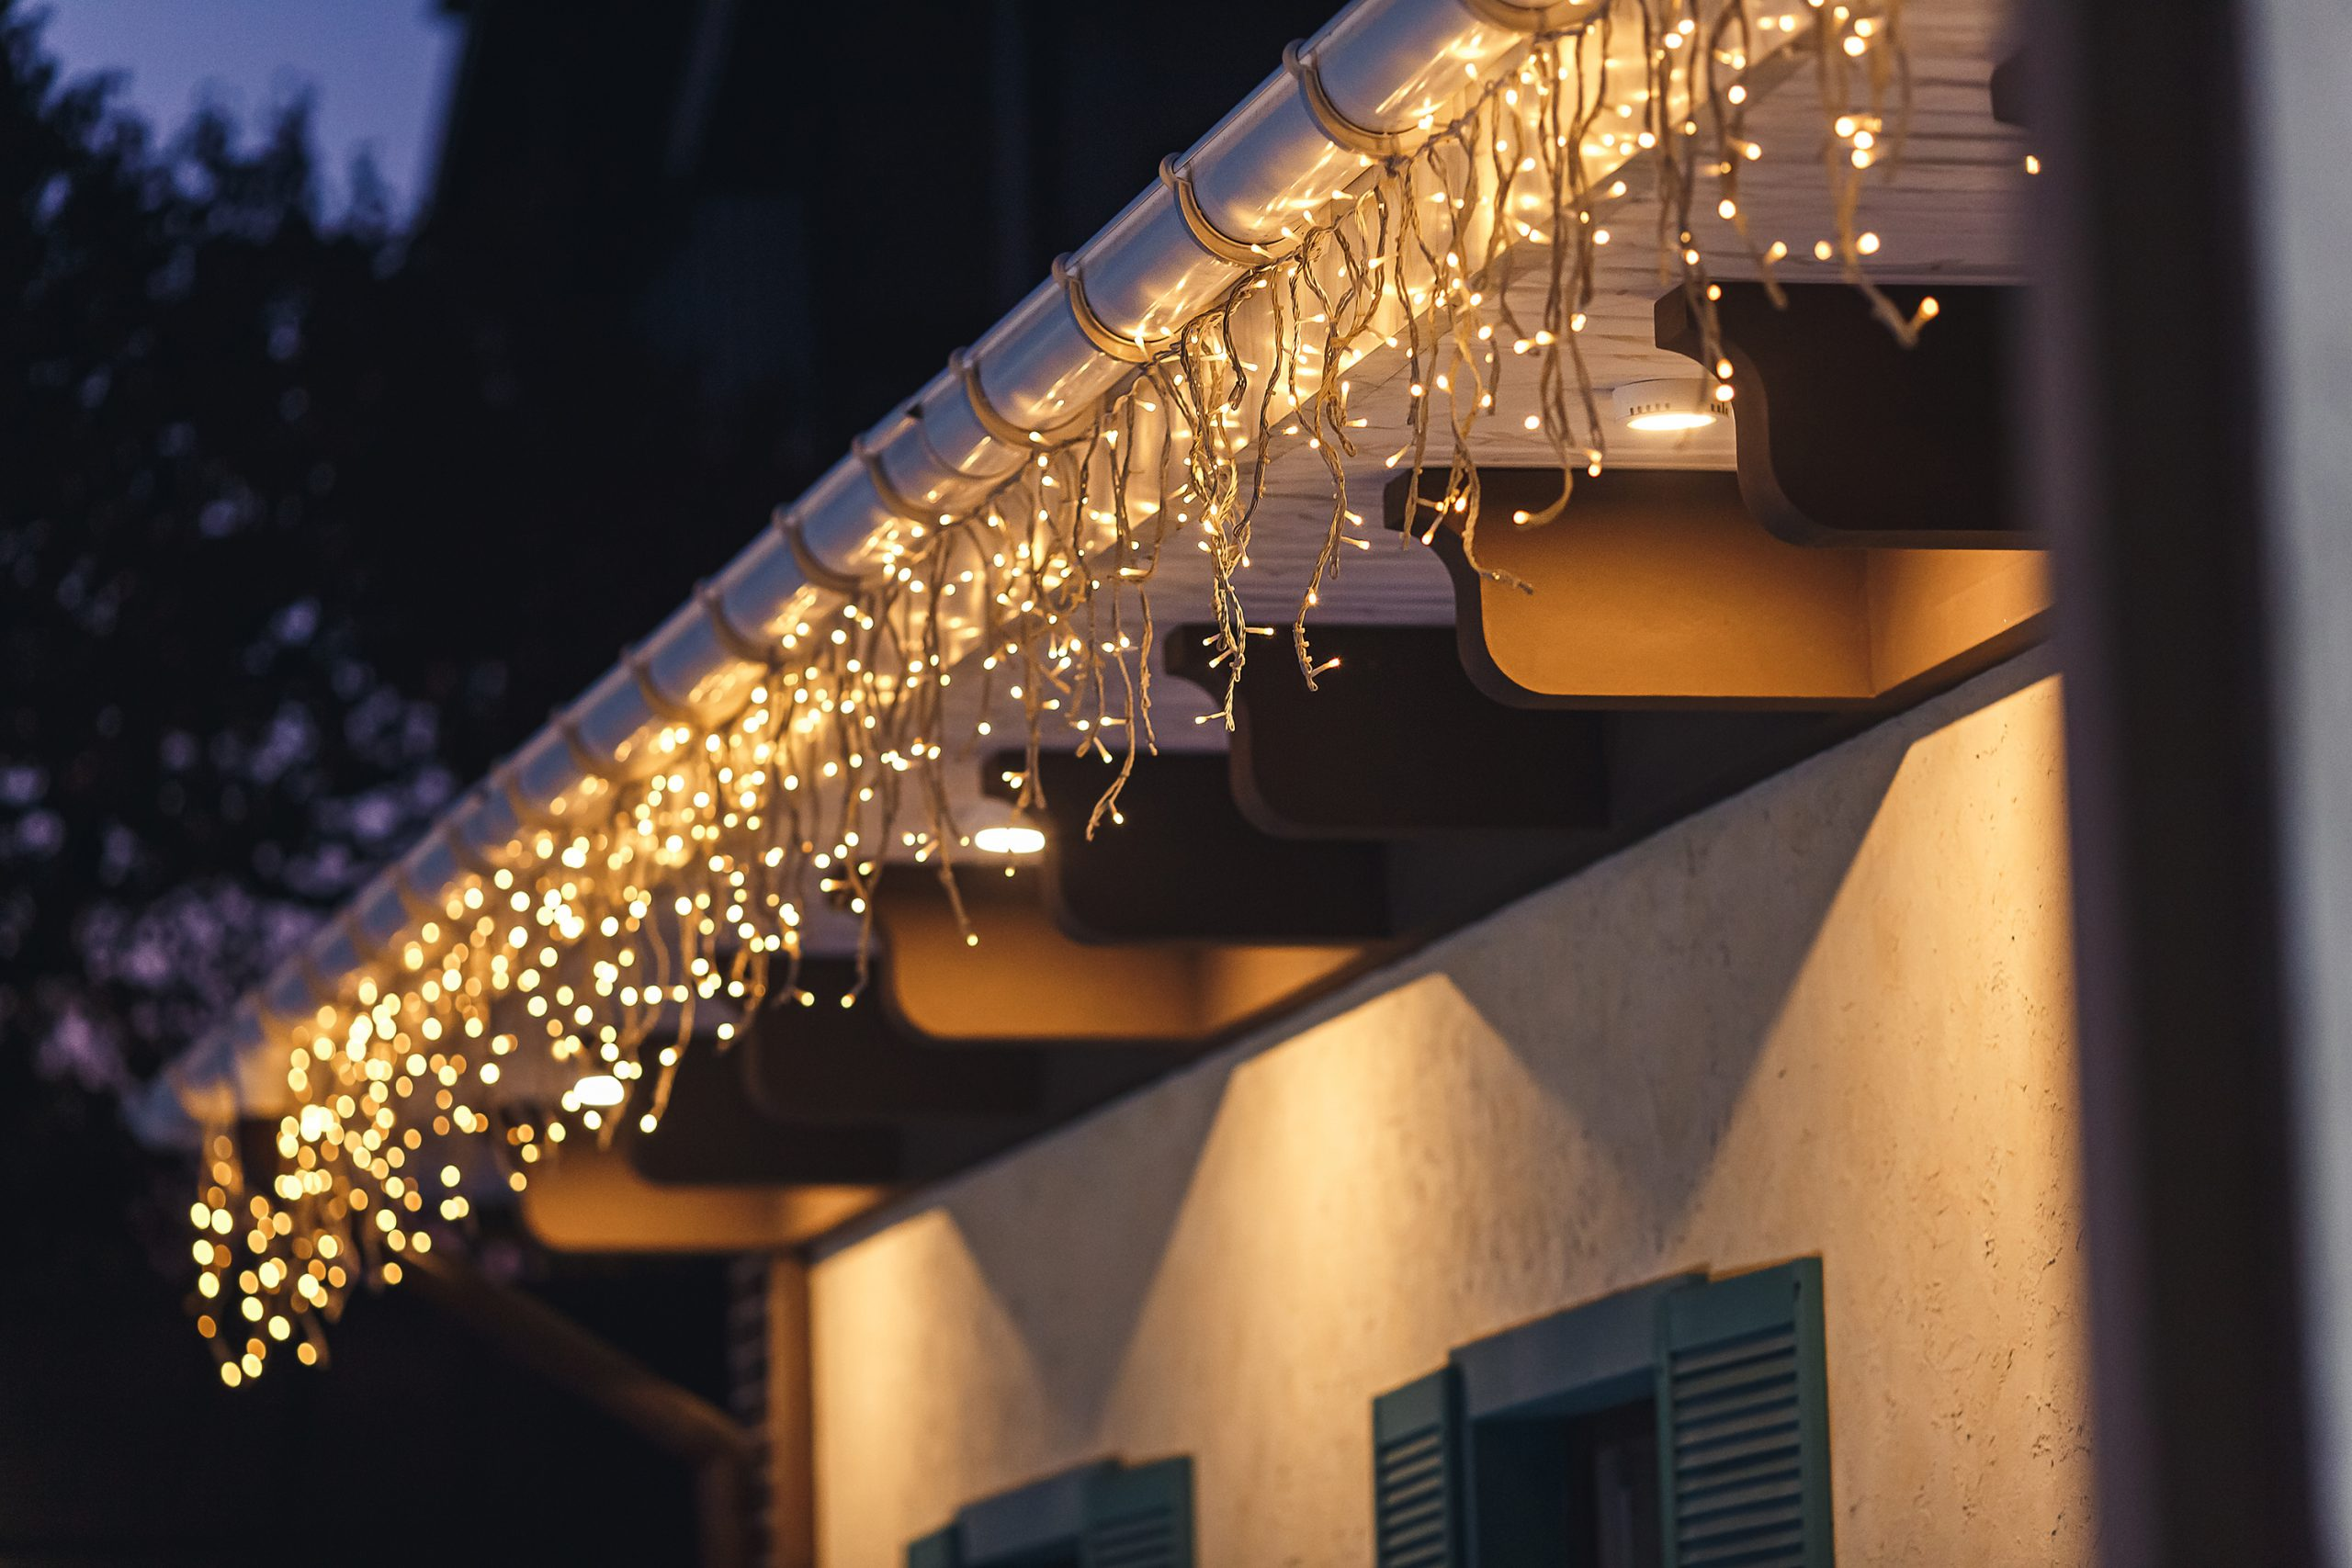 a garland hangs from the roof at night and illuminates the facade of the building.